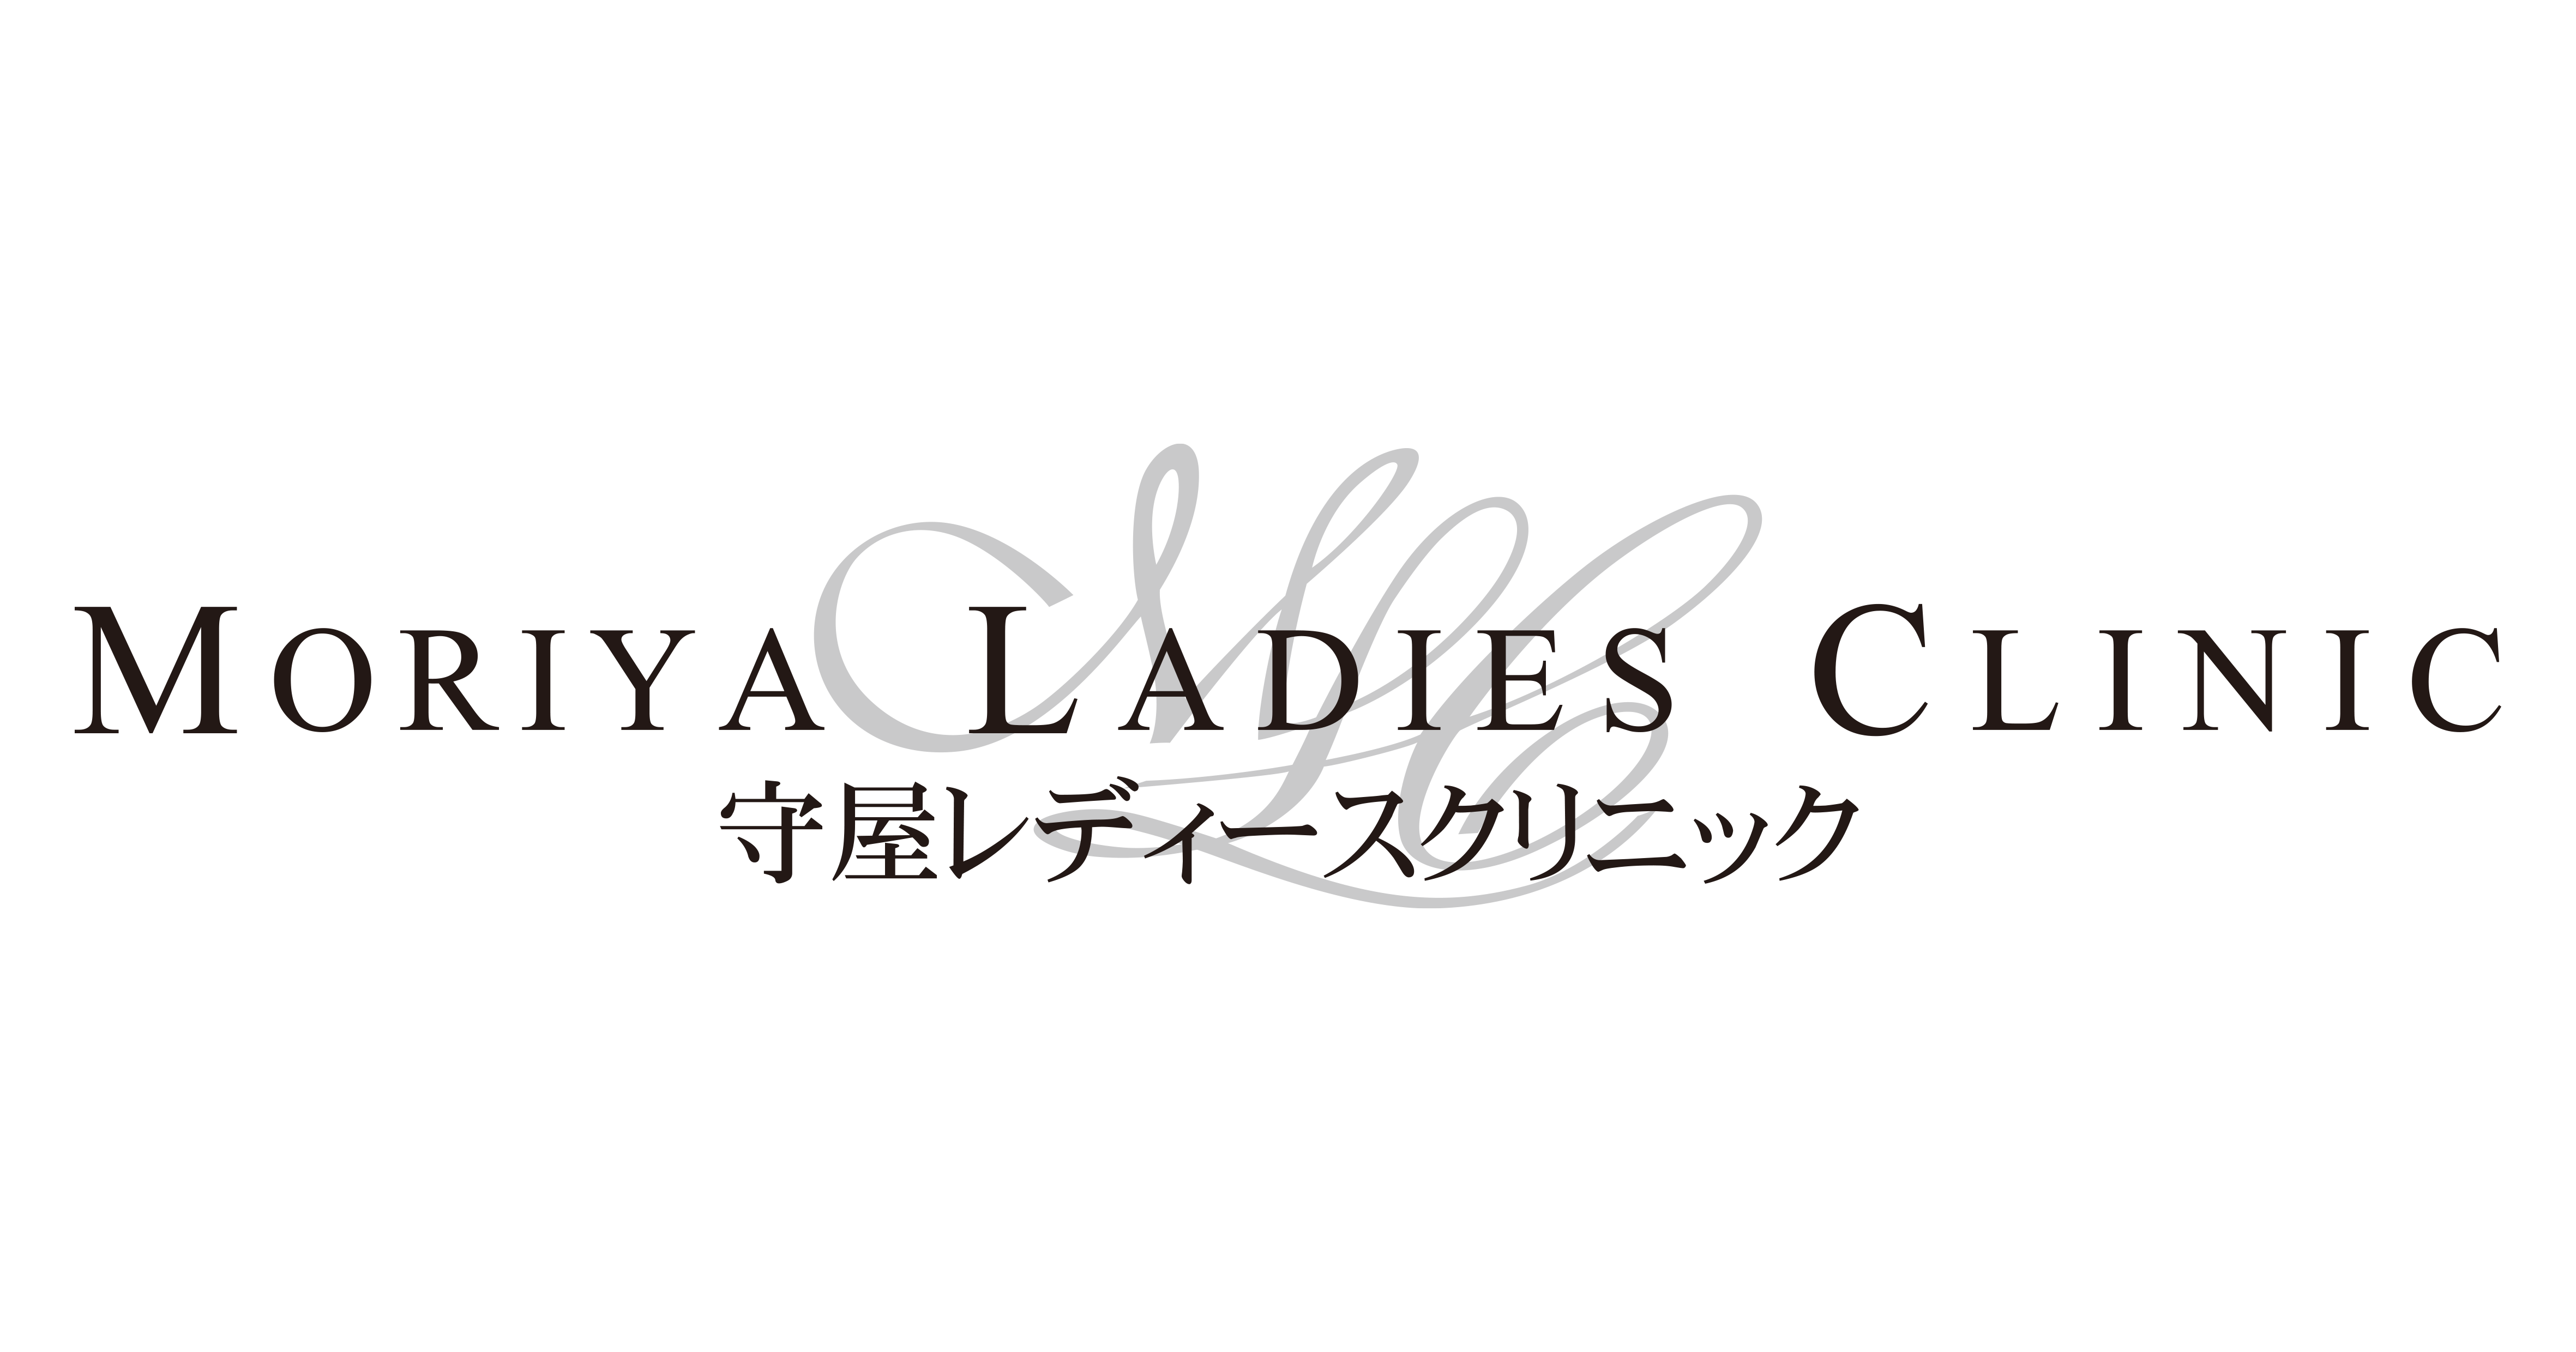 MORIYA LADIES CLINIC